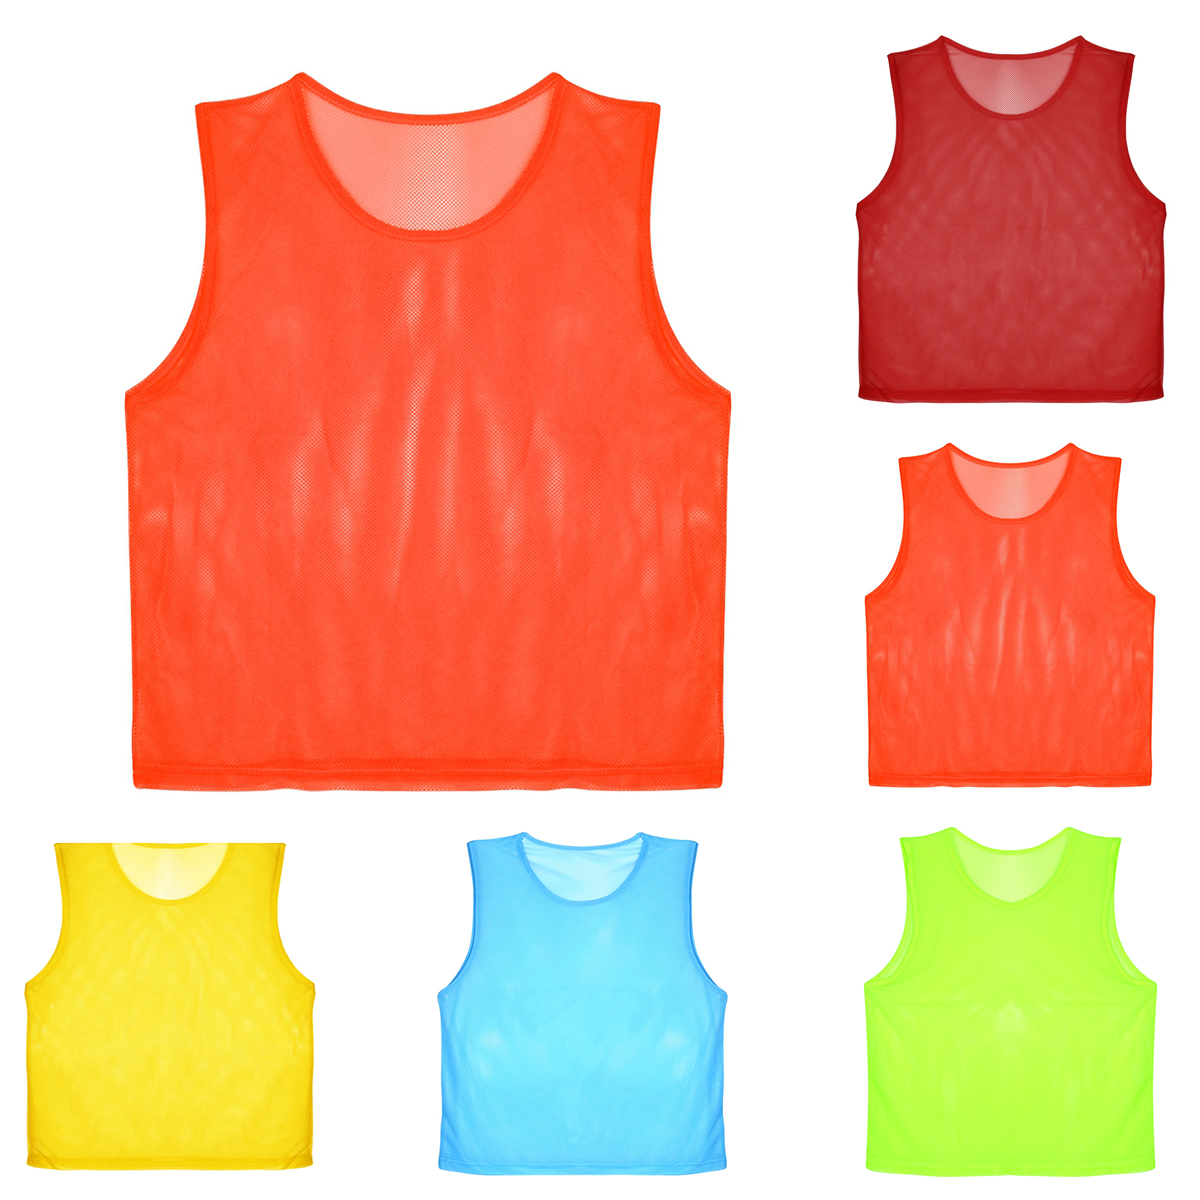 12 PCS Children Kid Quick Drying Basketball Jersey Team Sports Football Vest Soccer Pinnies Jerseys Youth Practice Training Bibs